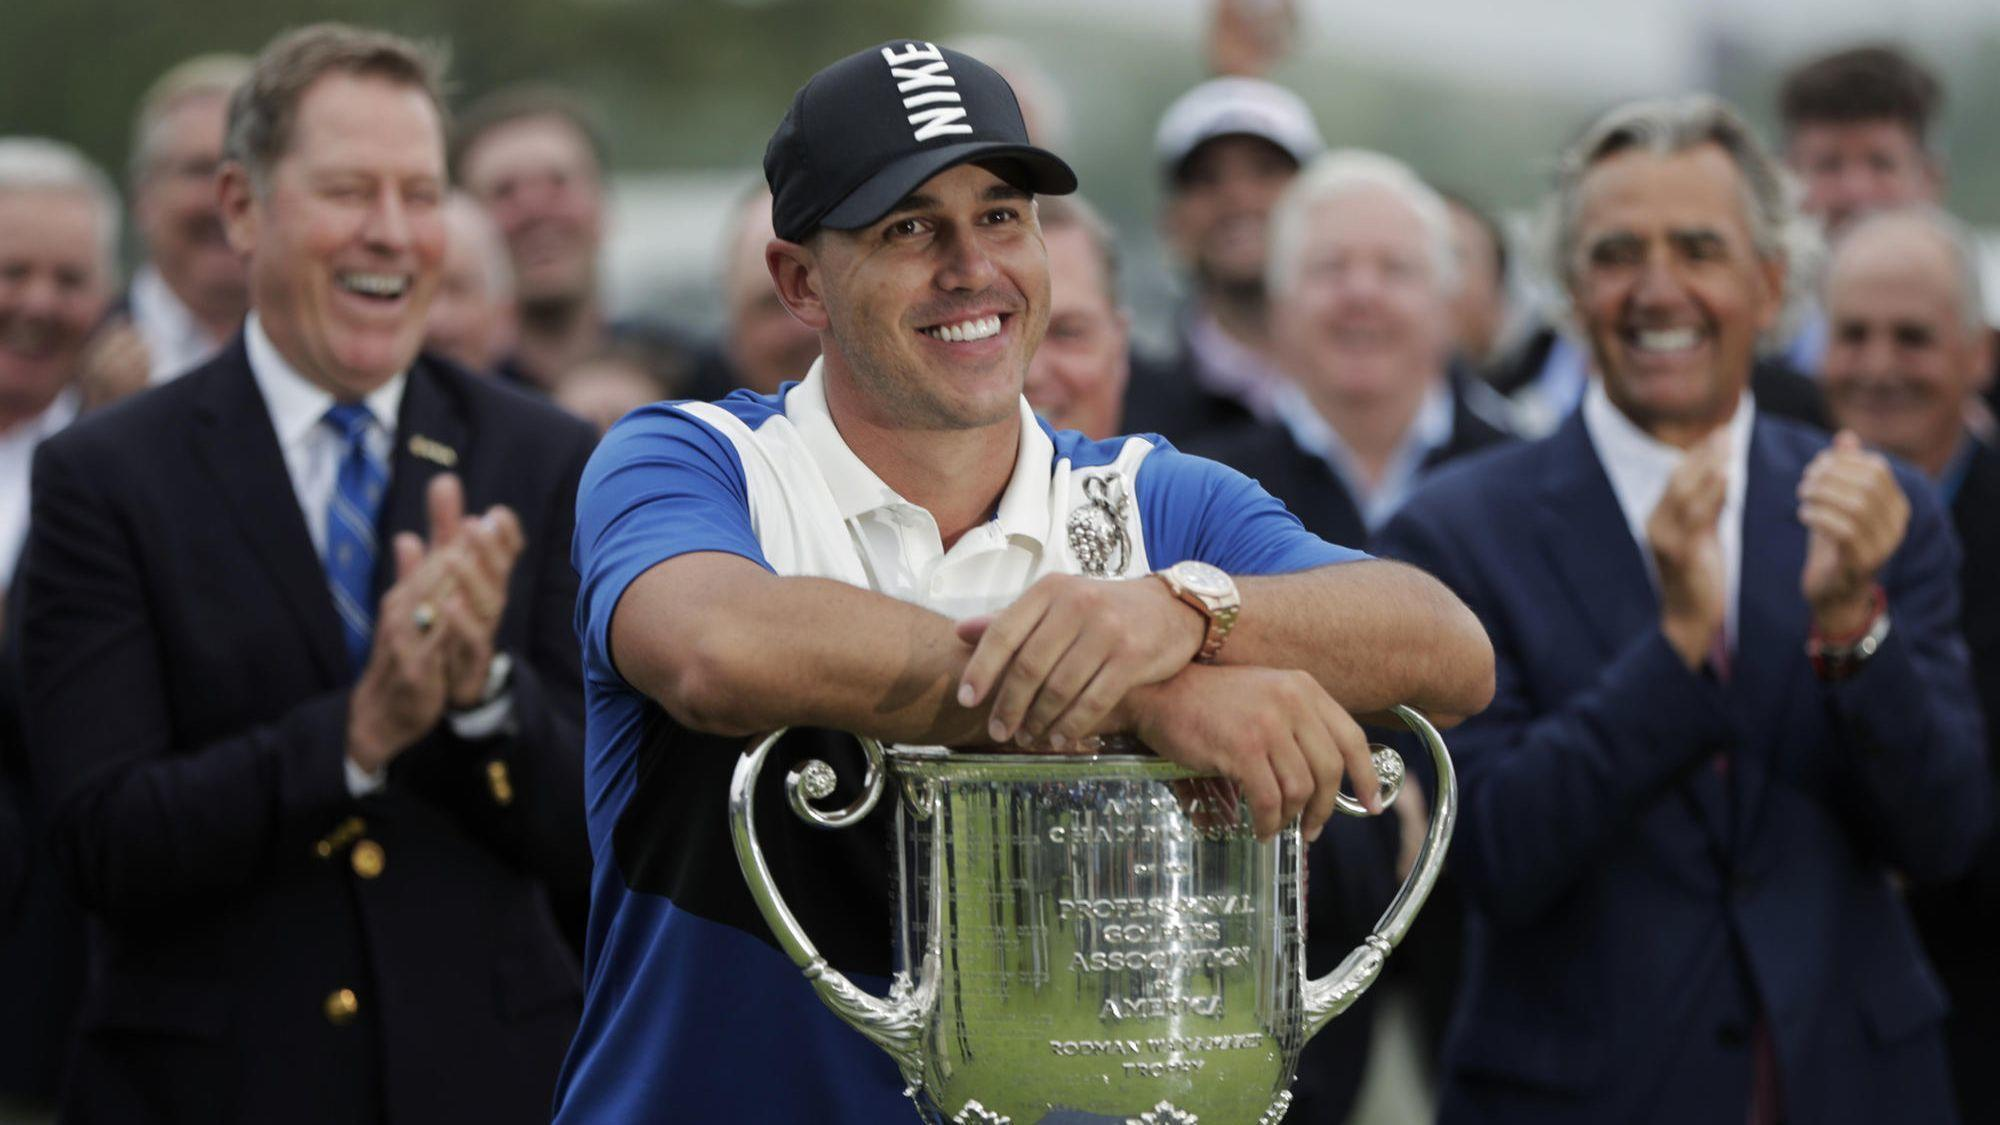 Brooks Koepka almost loses his big lead but hangs on to win his 2nd straight PGA Championship